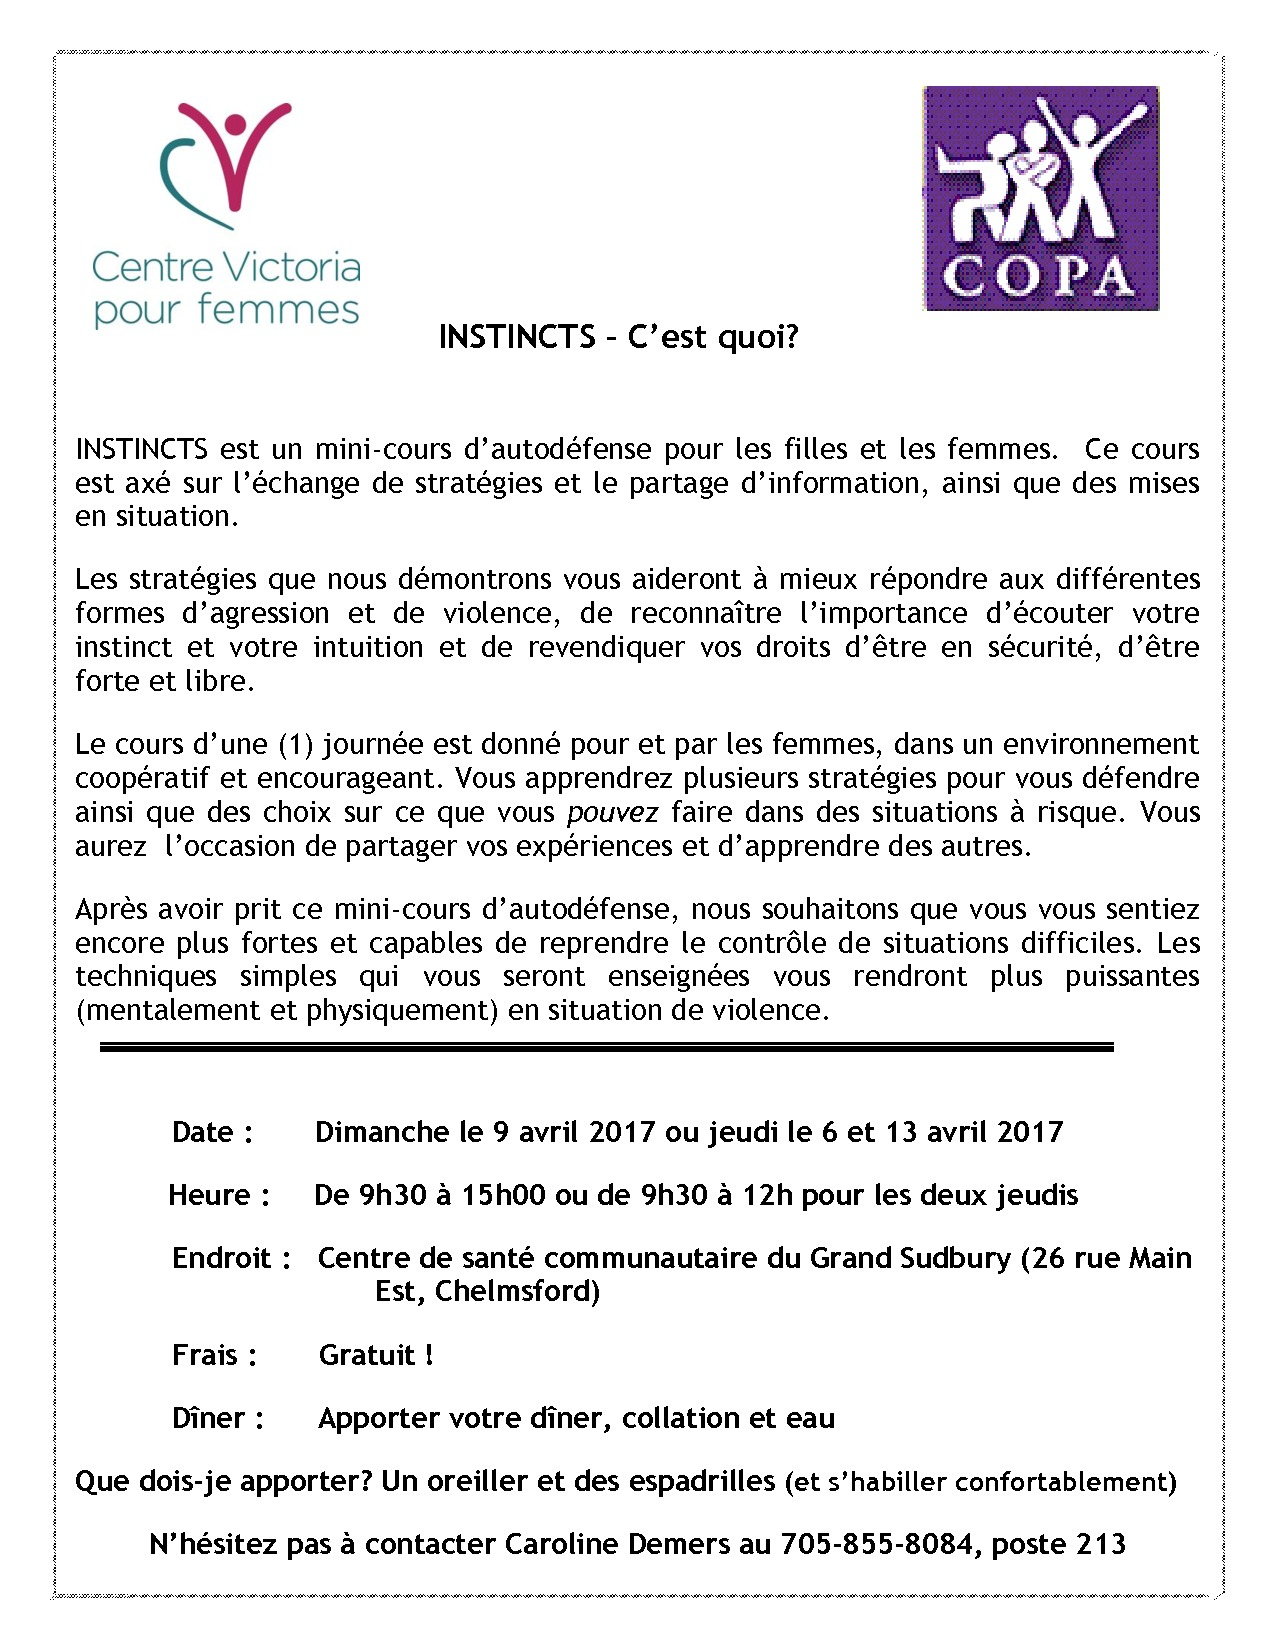 thumbnail of Invitation-AUTODÉFENSECentre-de-santé-Chelmsford-9-avril-2017.pdf